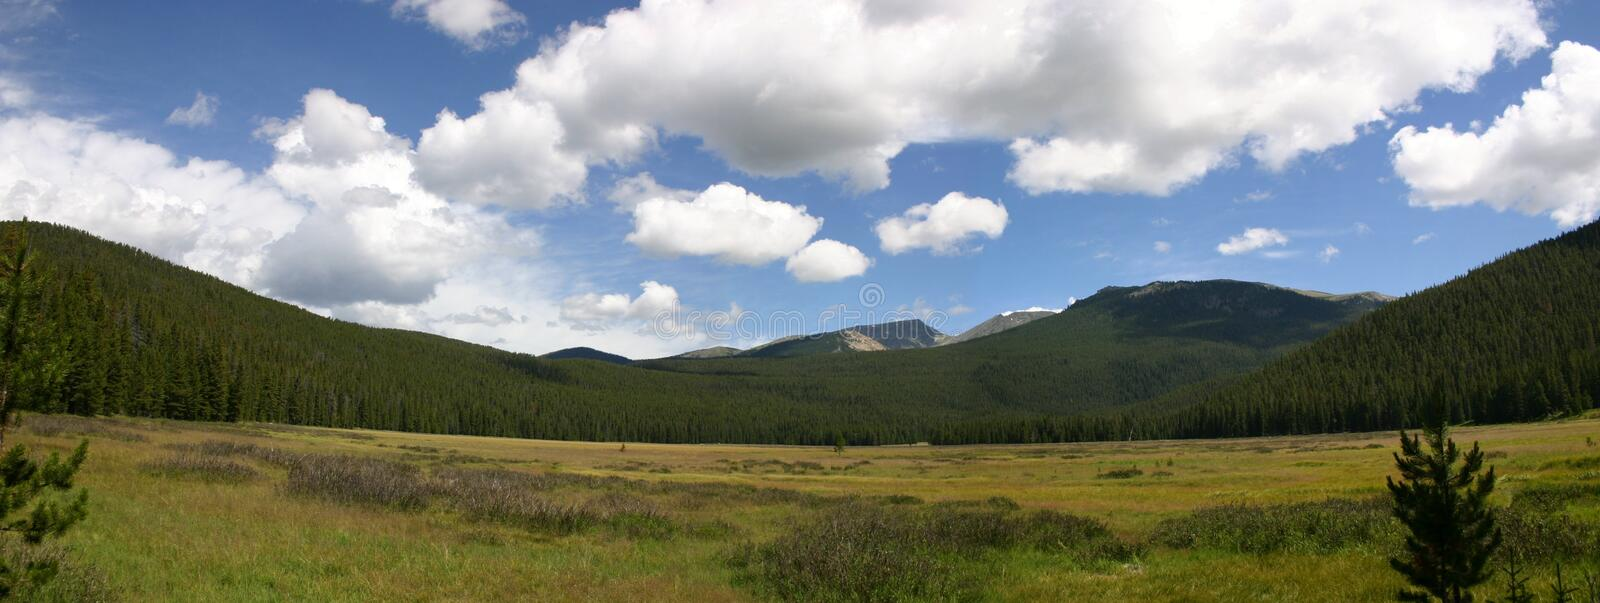 Download Big Meadow stock photo. Image of color, mountain, open, grass - 19994